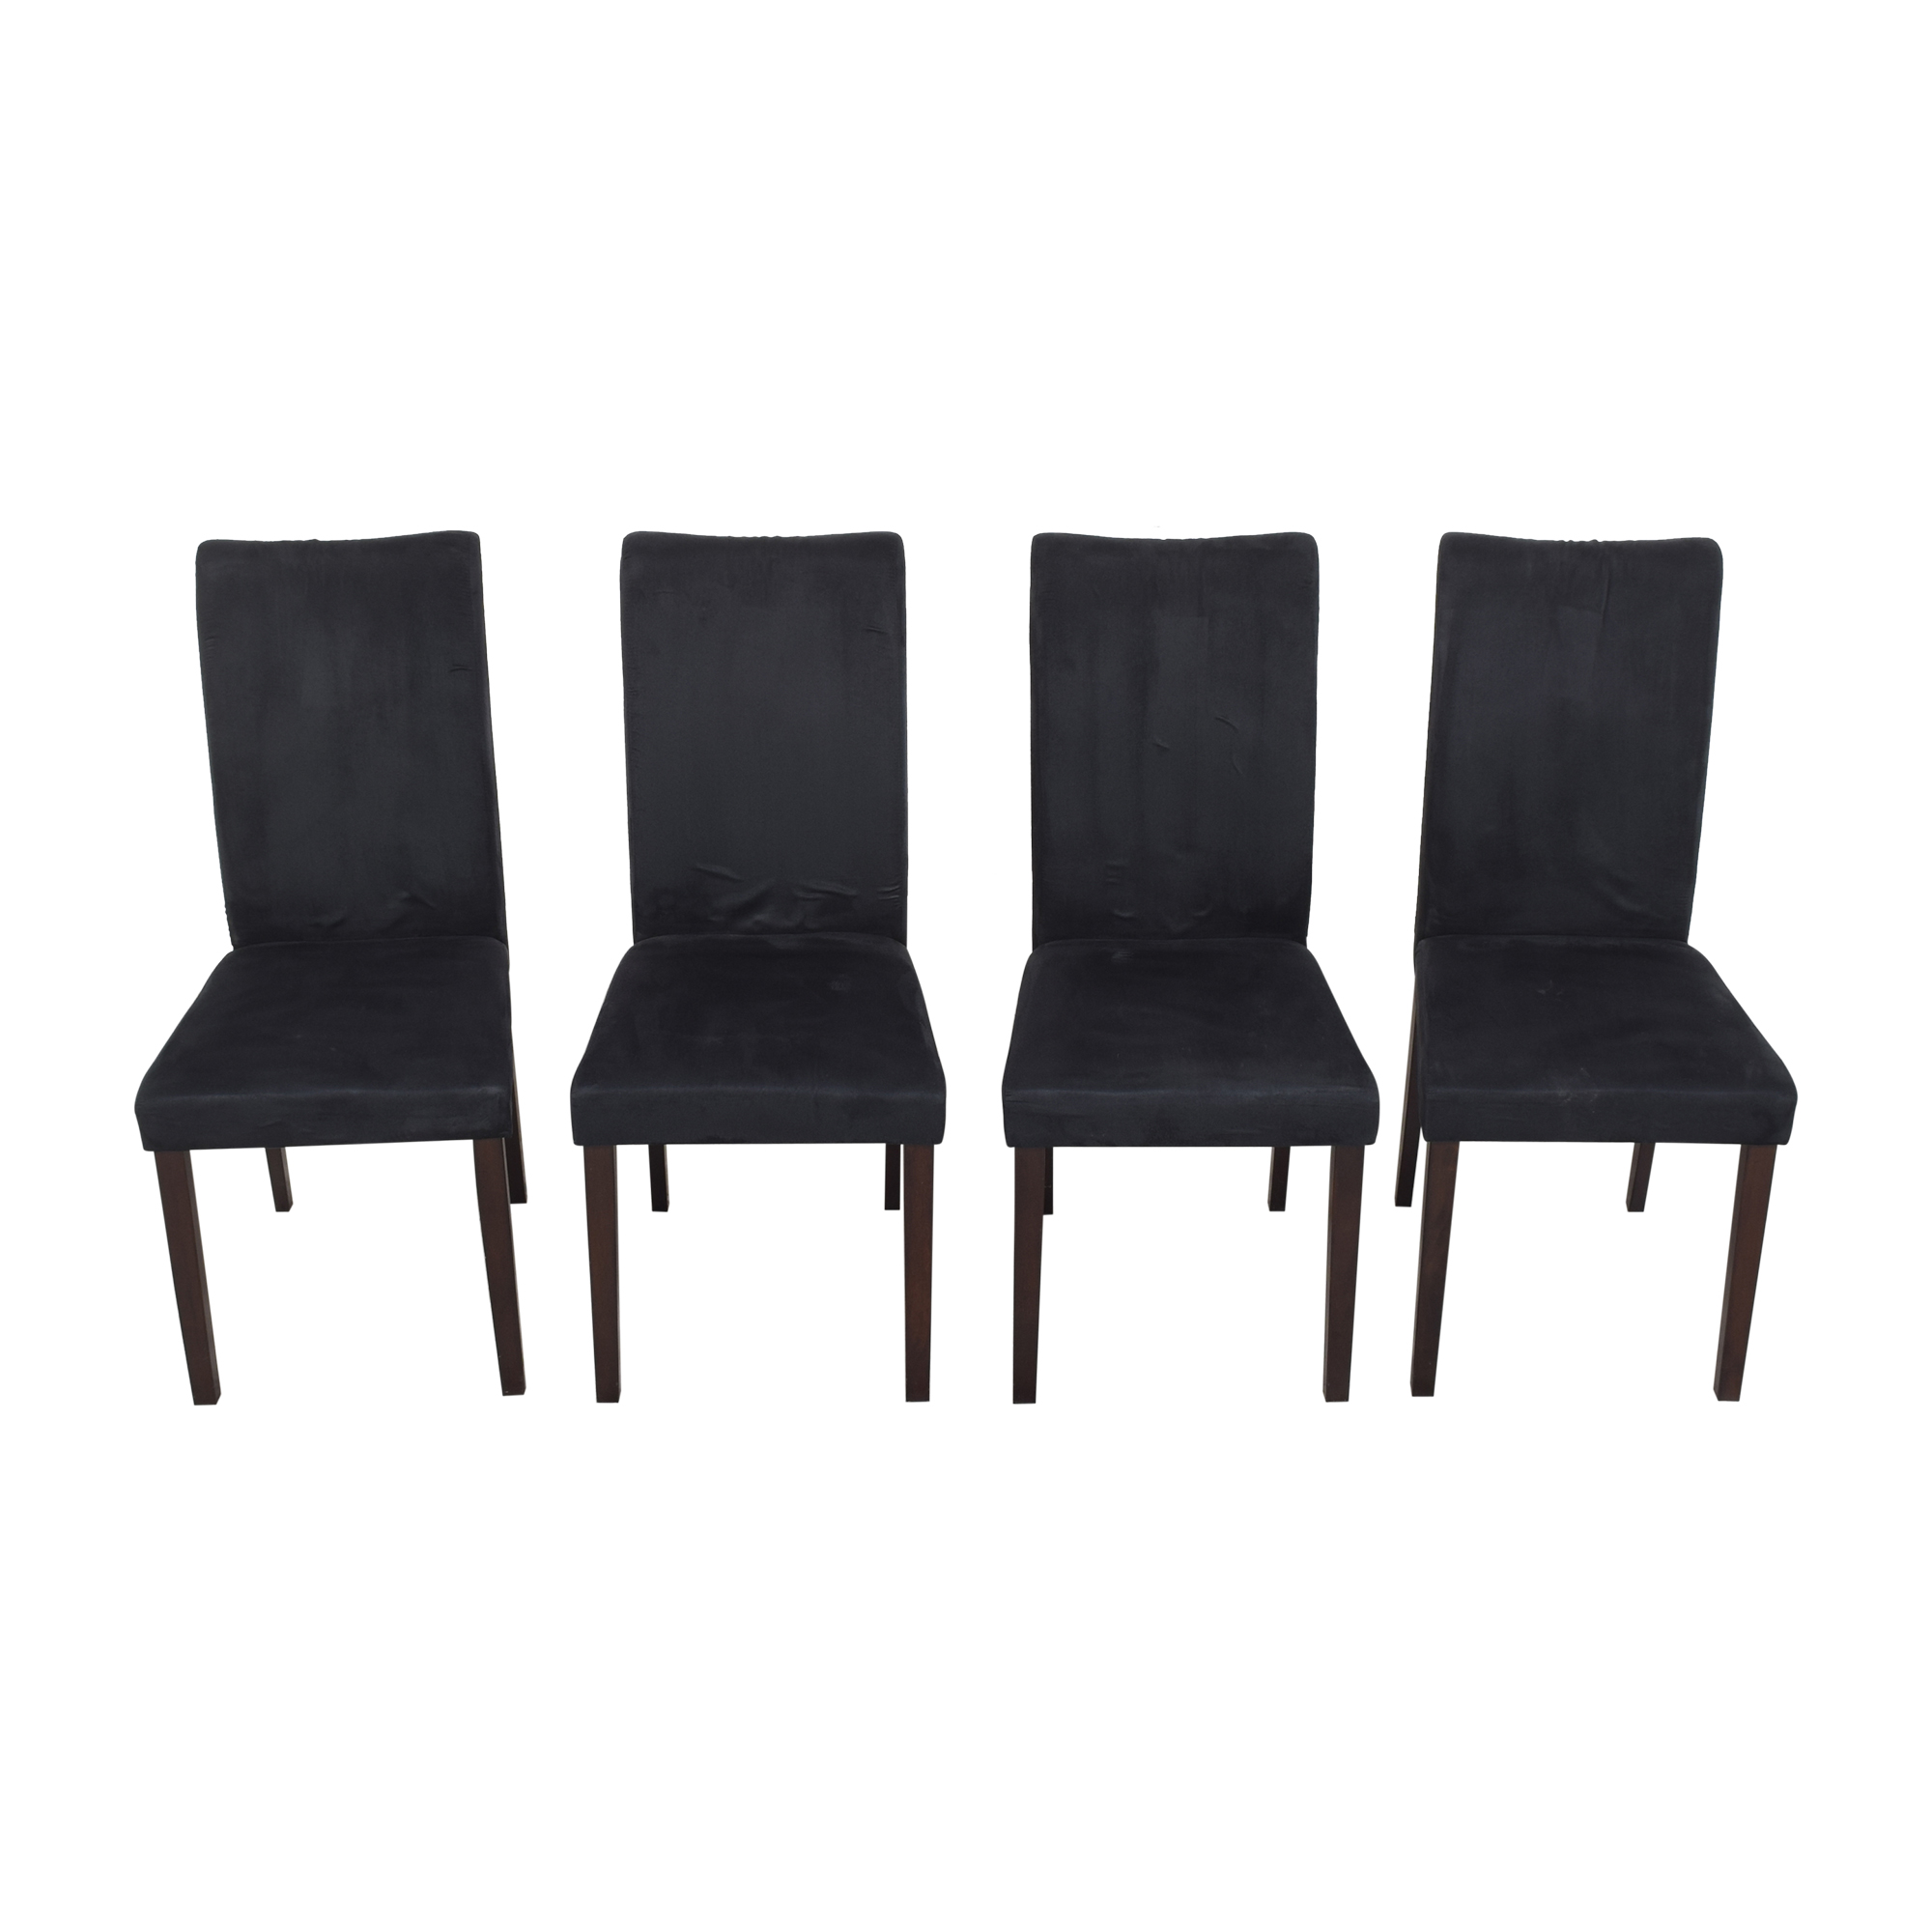 High Back Dining Chairs used